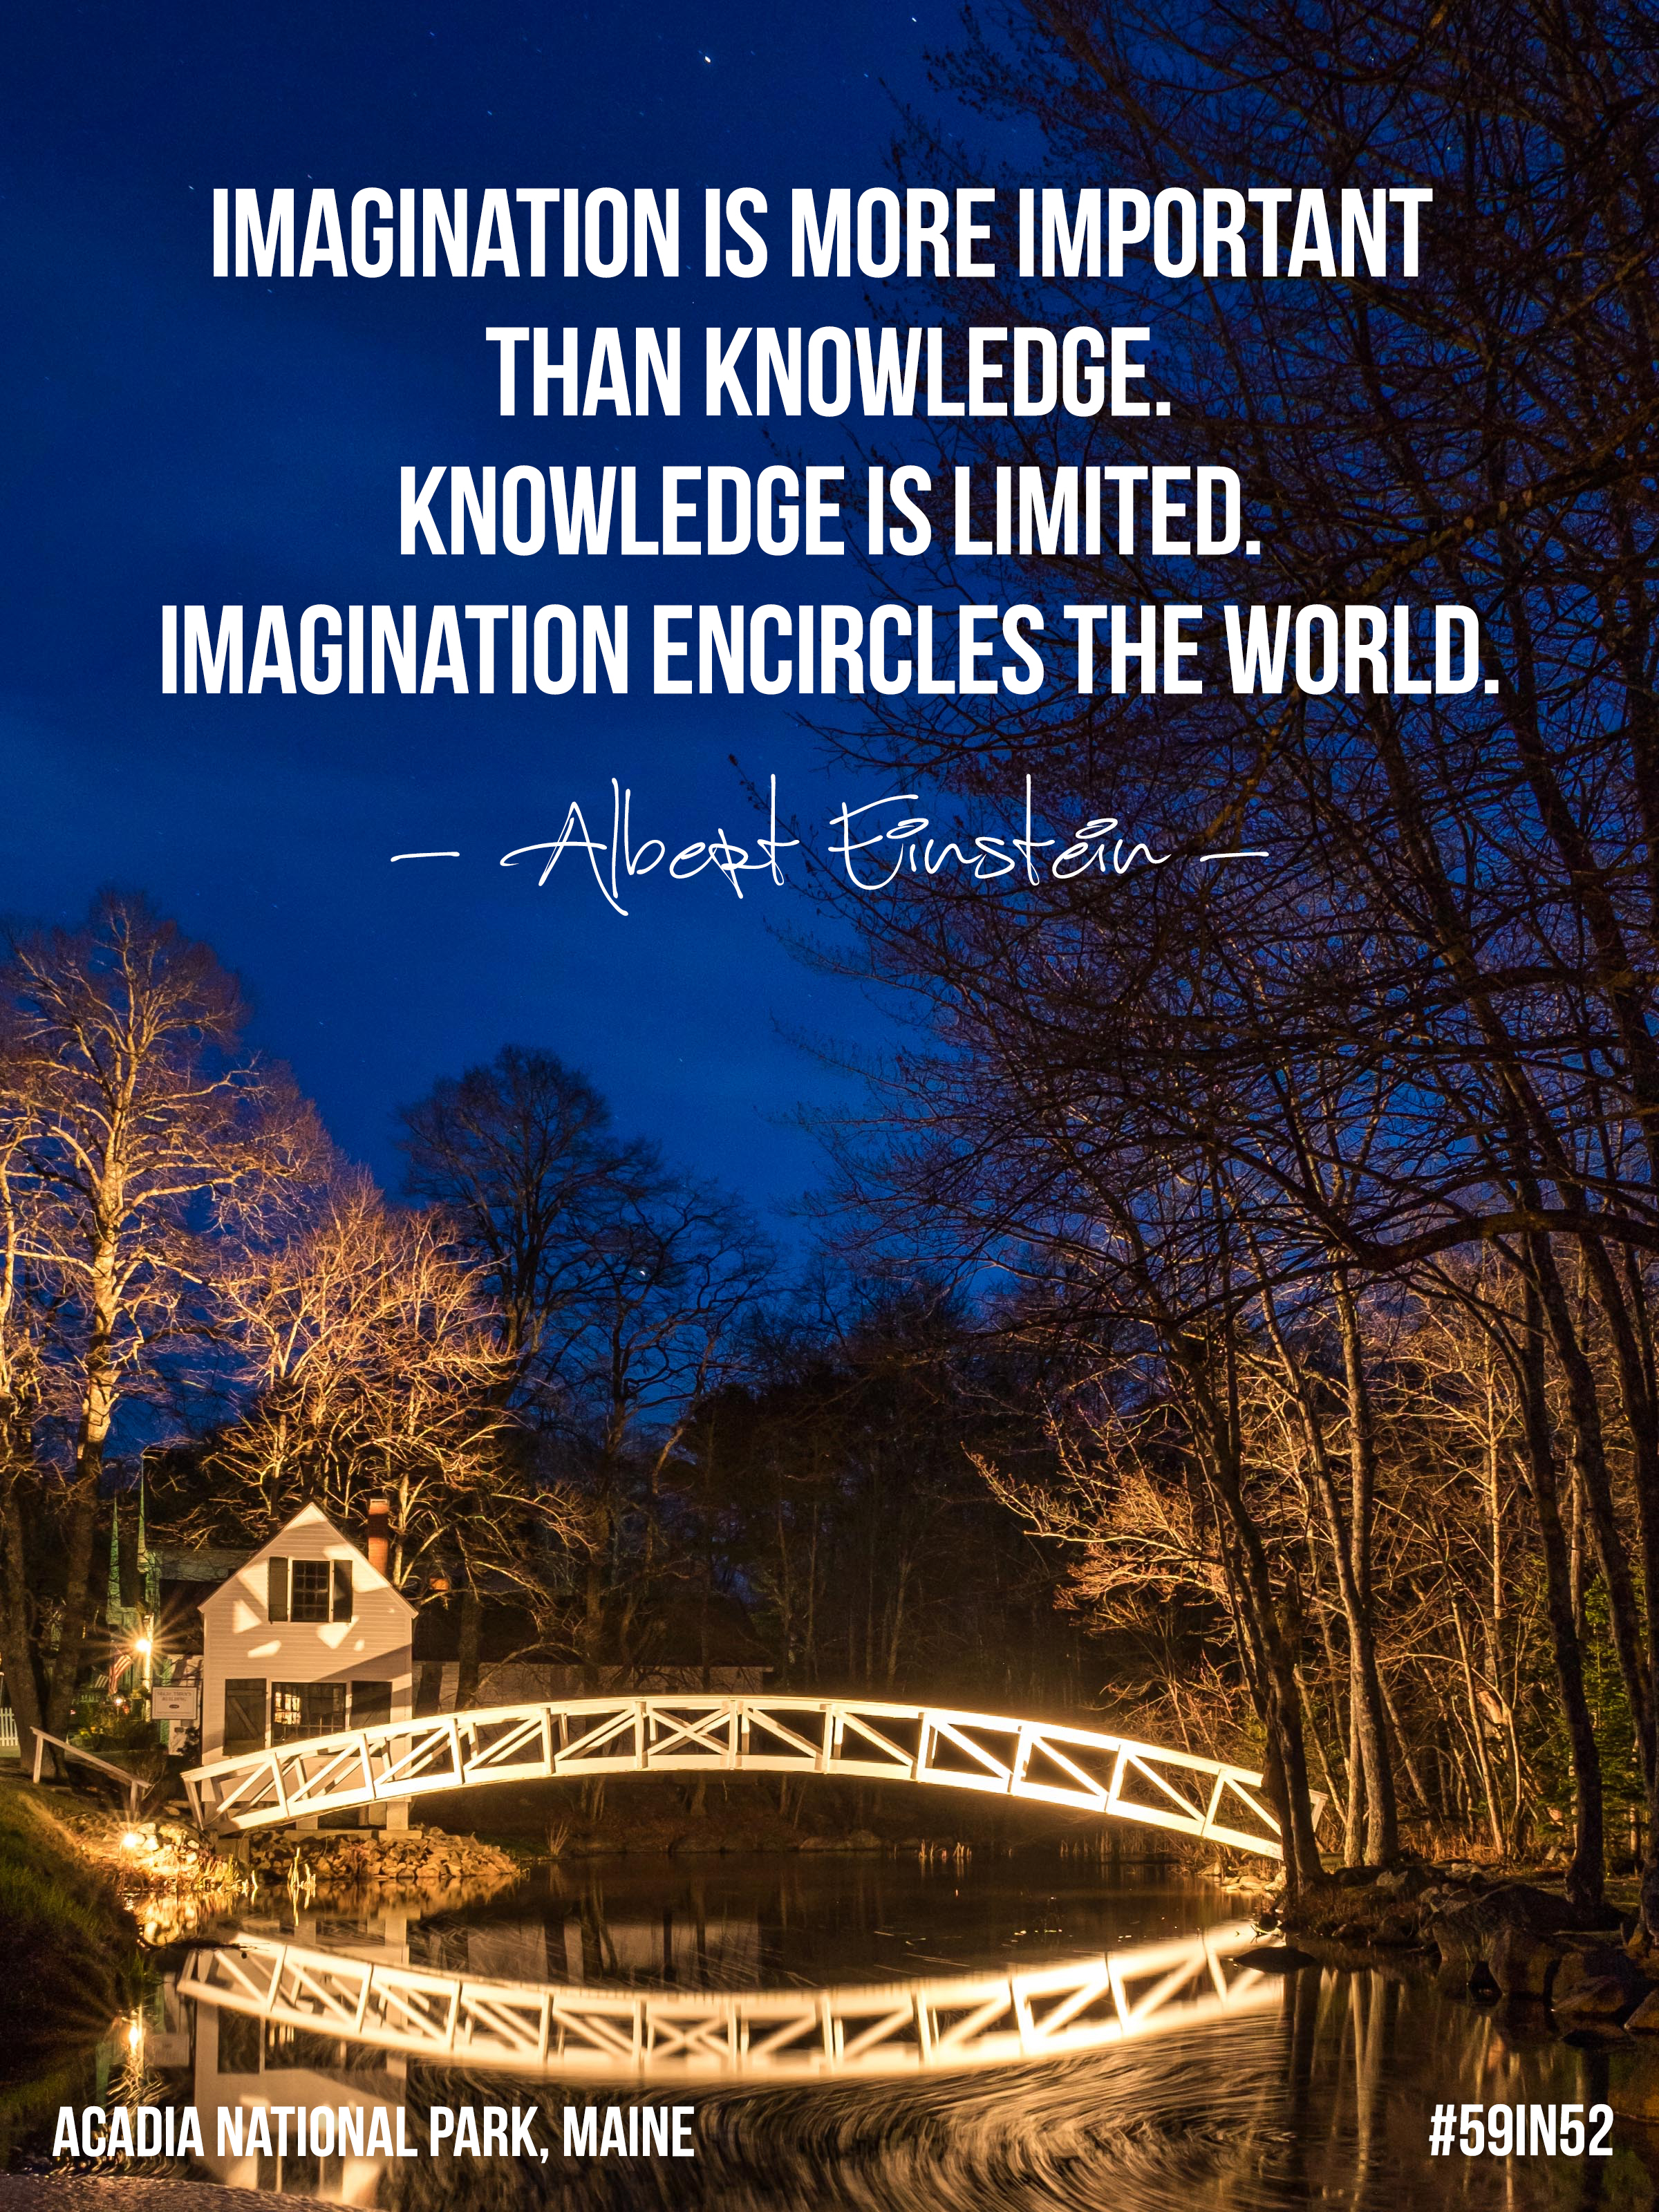 'Imagination is more important than knowledge. Knowledge is limited. Imagination encircles the world.' - Albert Einstein